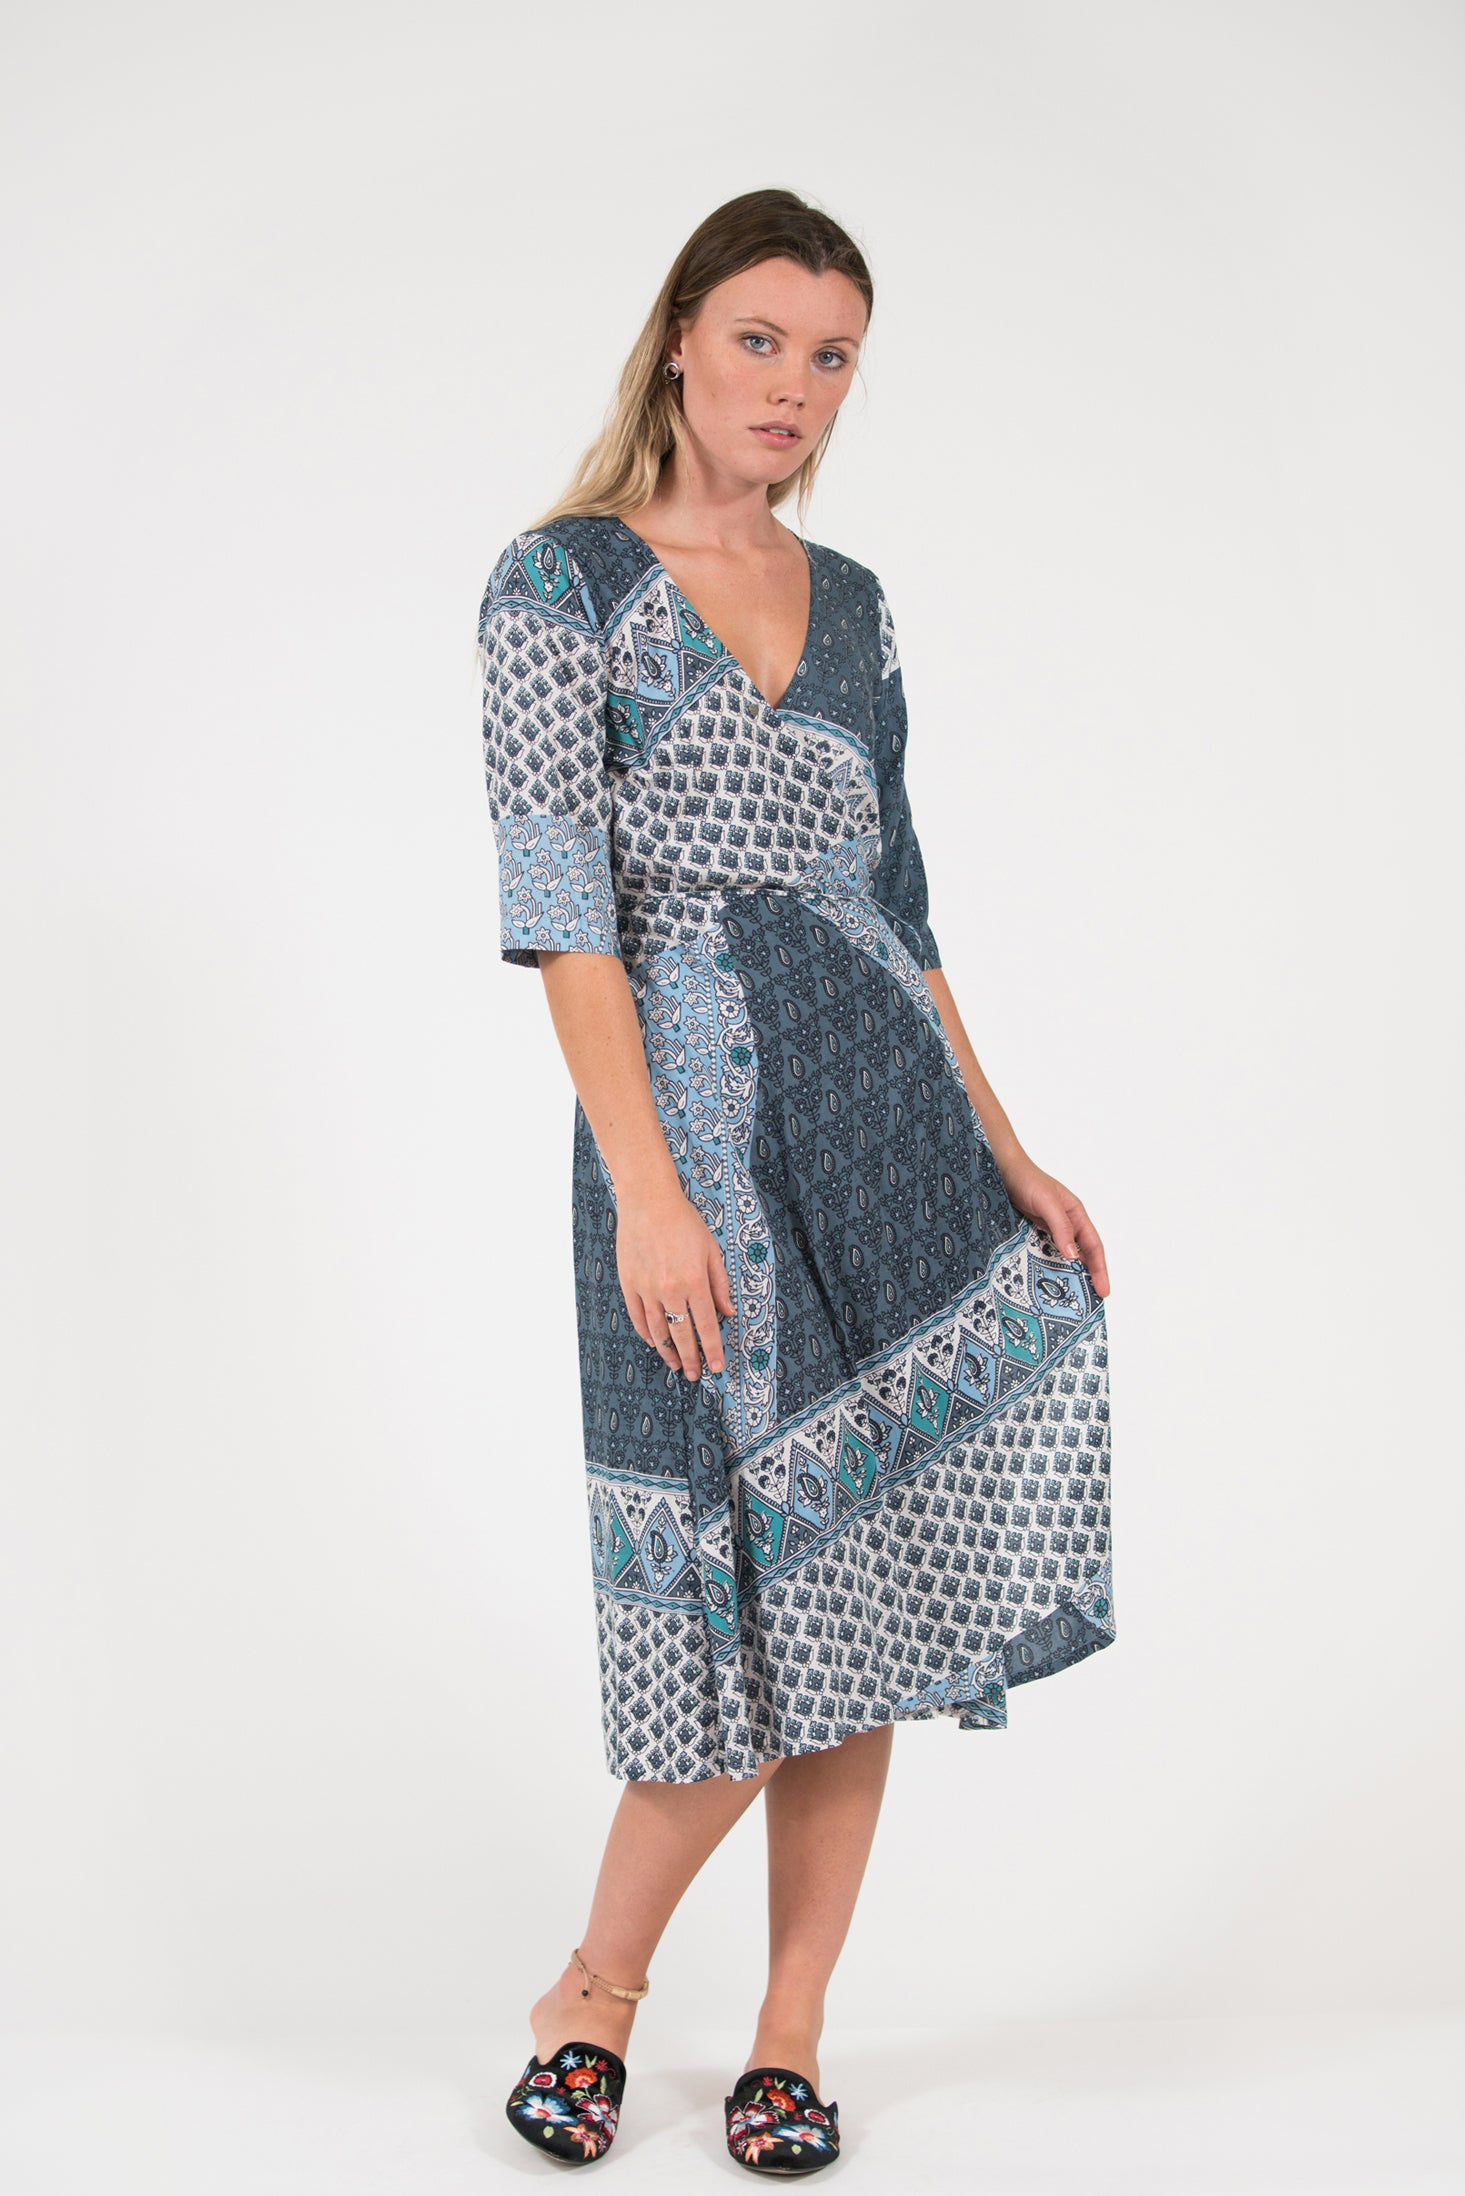 printed blue sarong wrap dress 3/4 sleeve